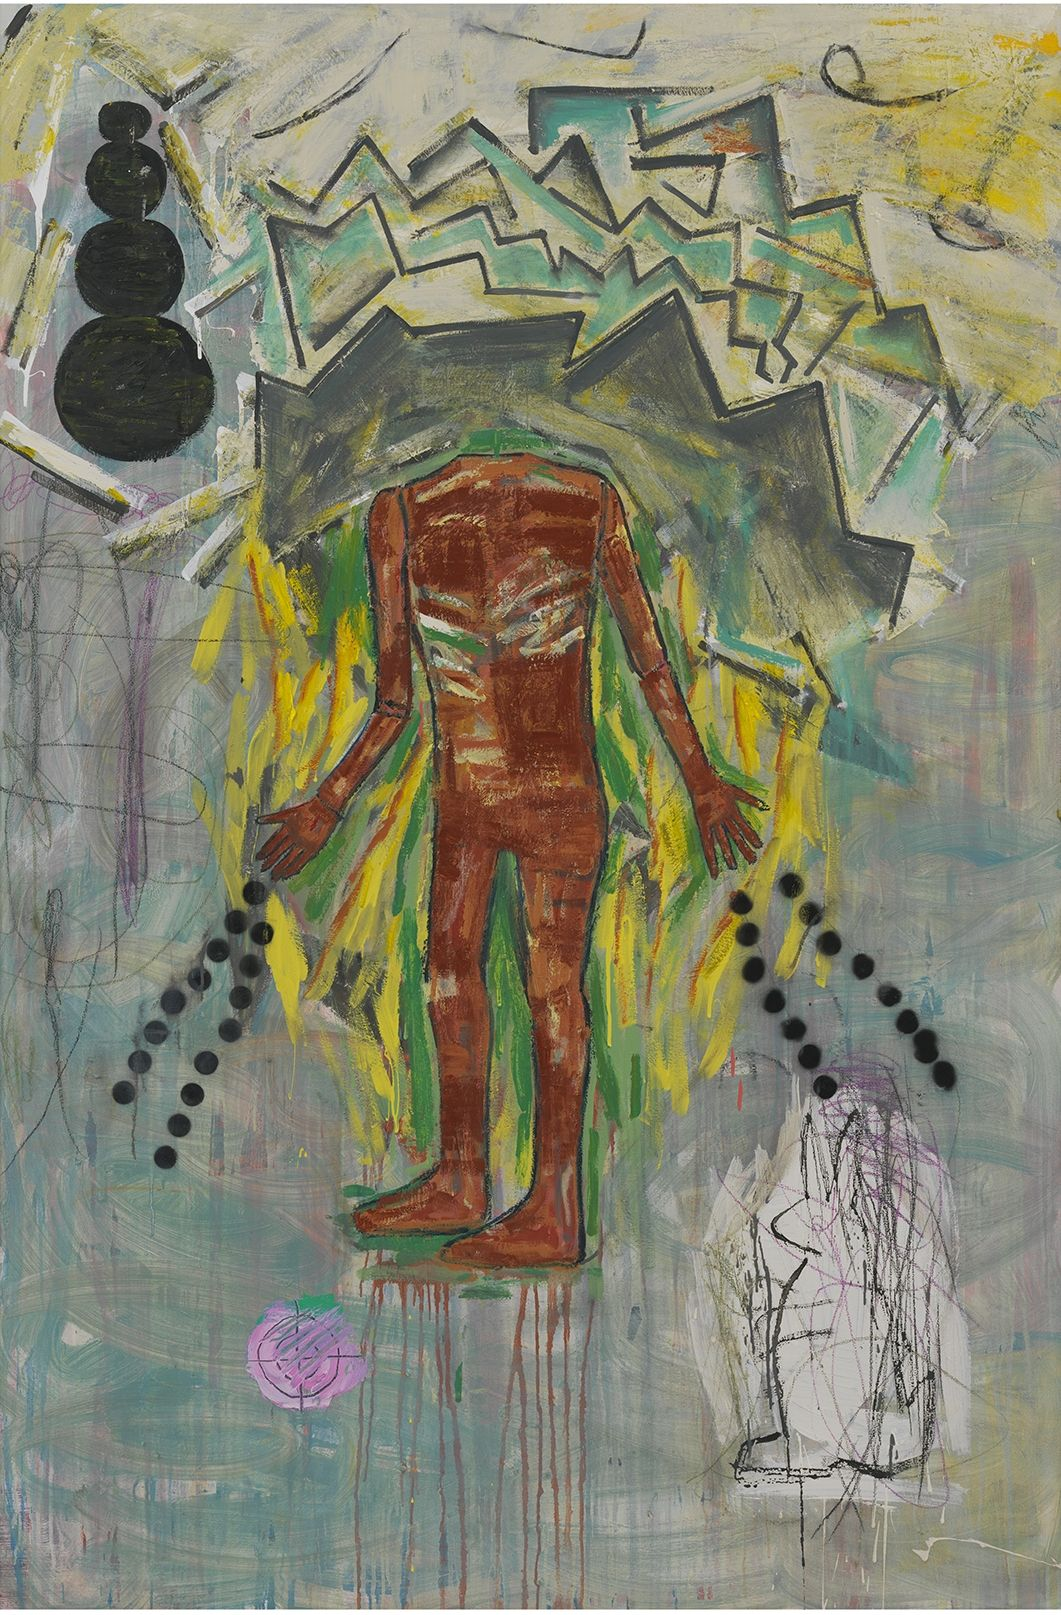 Black Ice, 2011, Mixed media on canvas